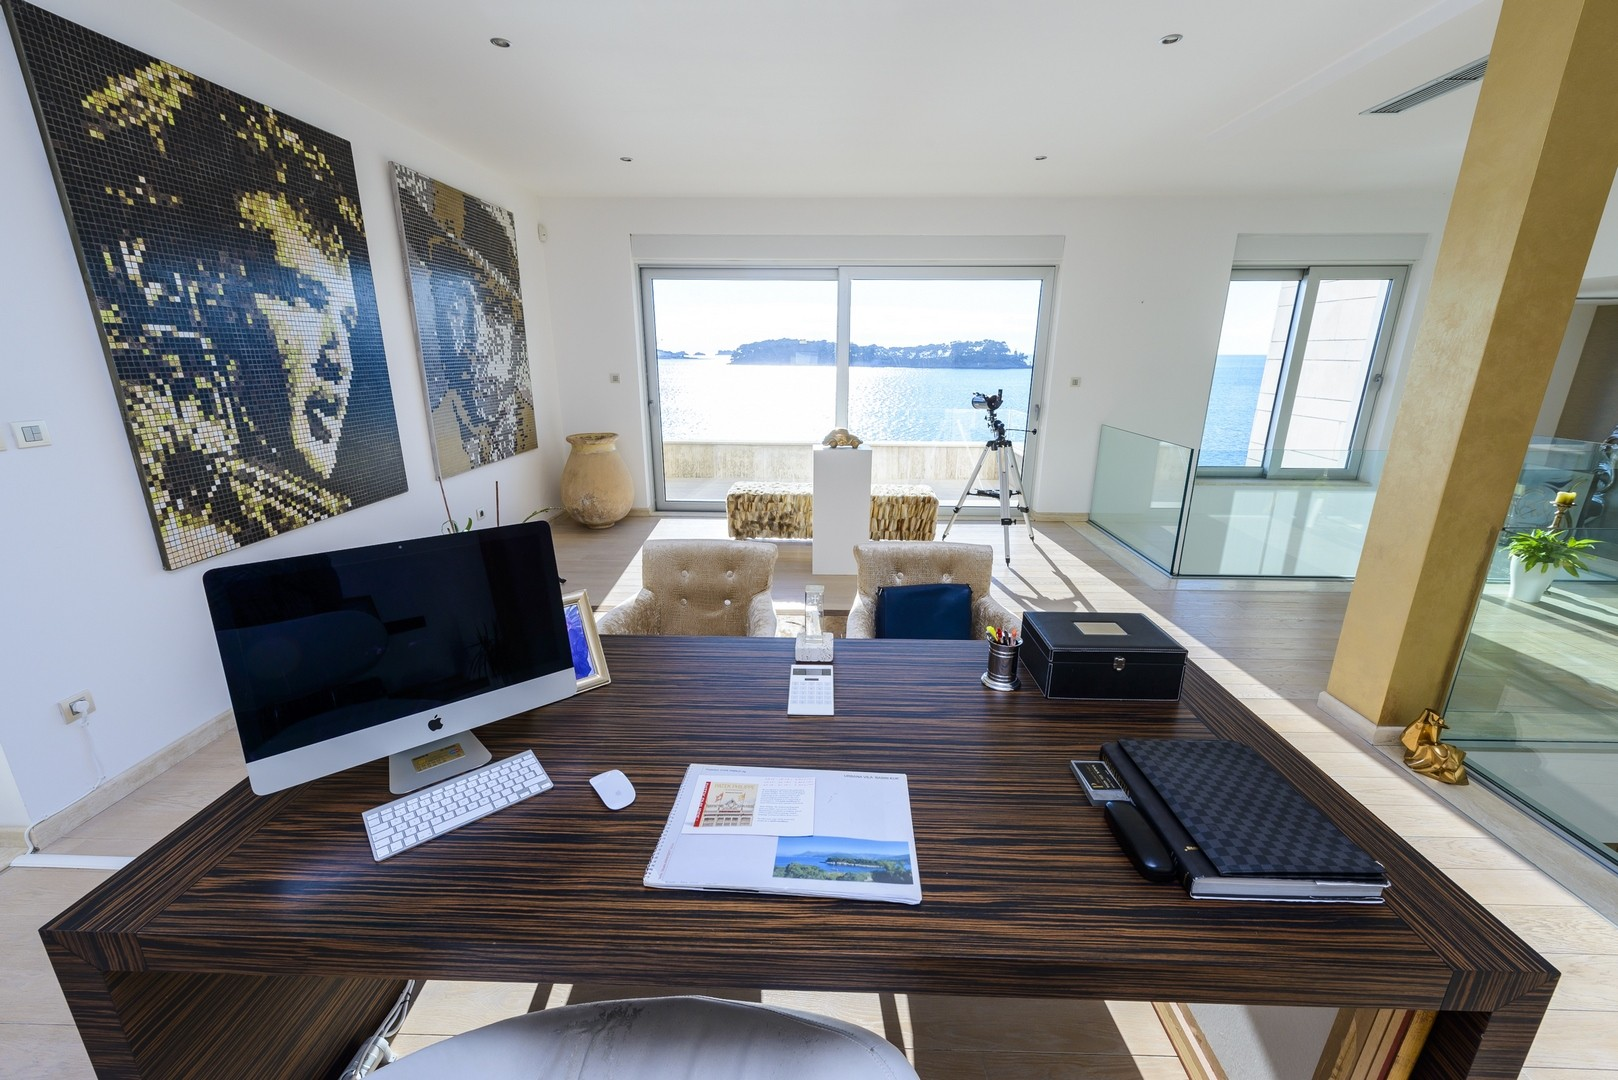 Luxurious Holiday Villas as the Ideal Home Office in Croatia